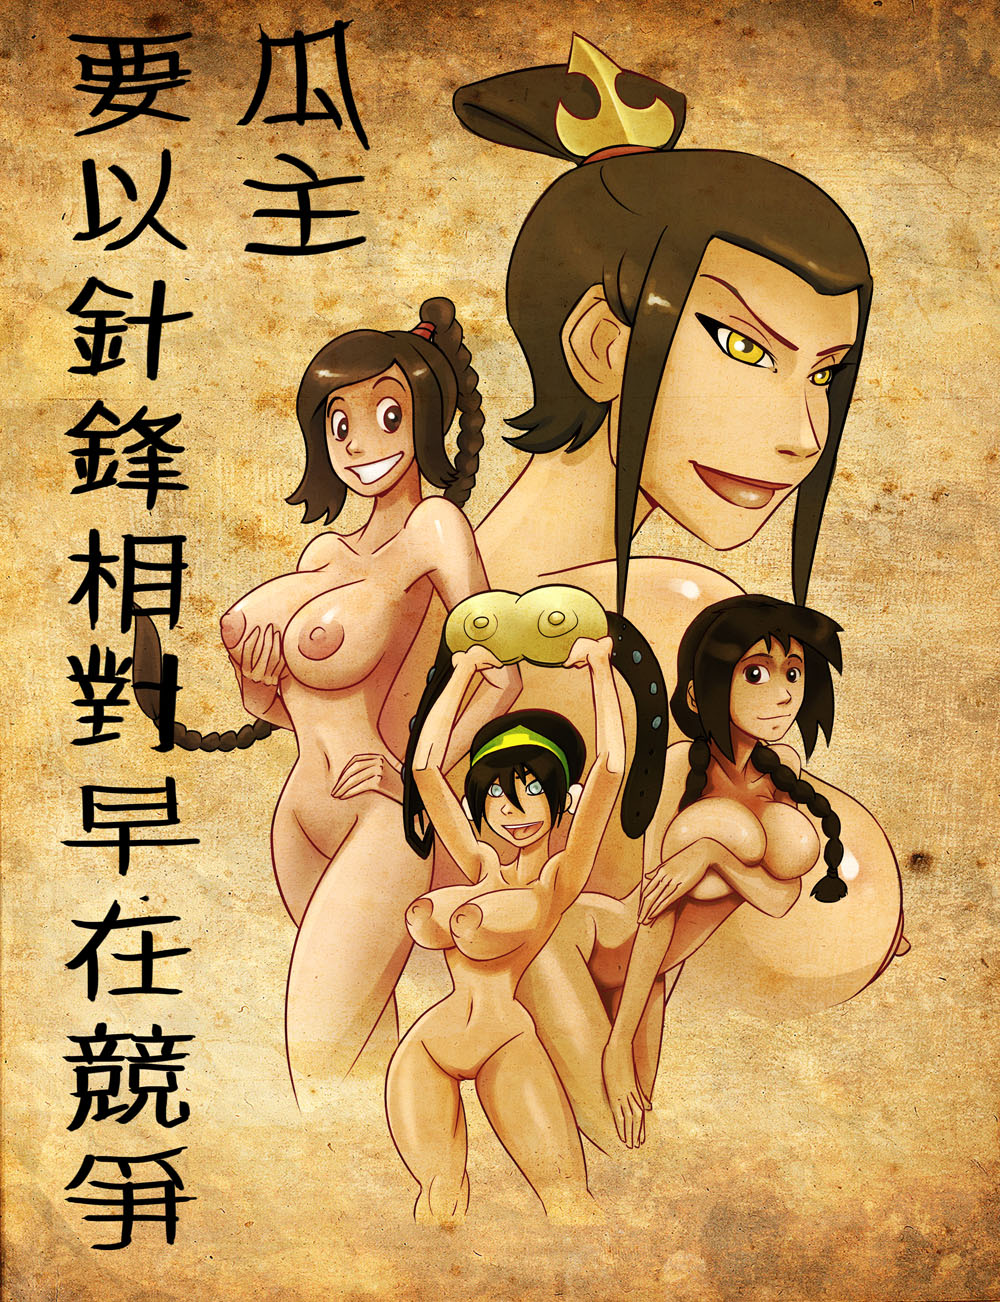 hentai last the avatar airbender jin Naked lois from family guy